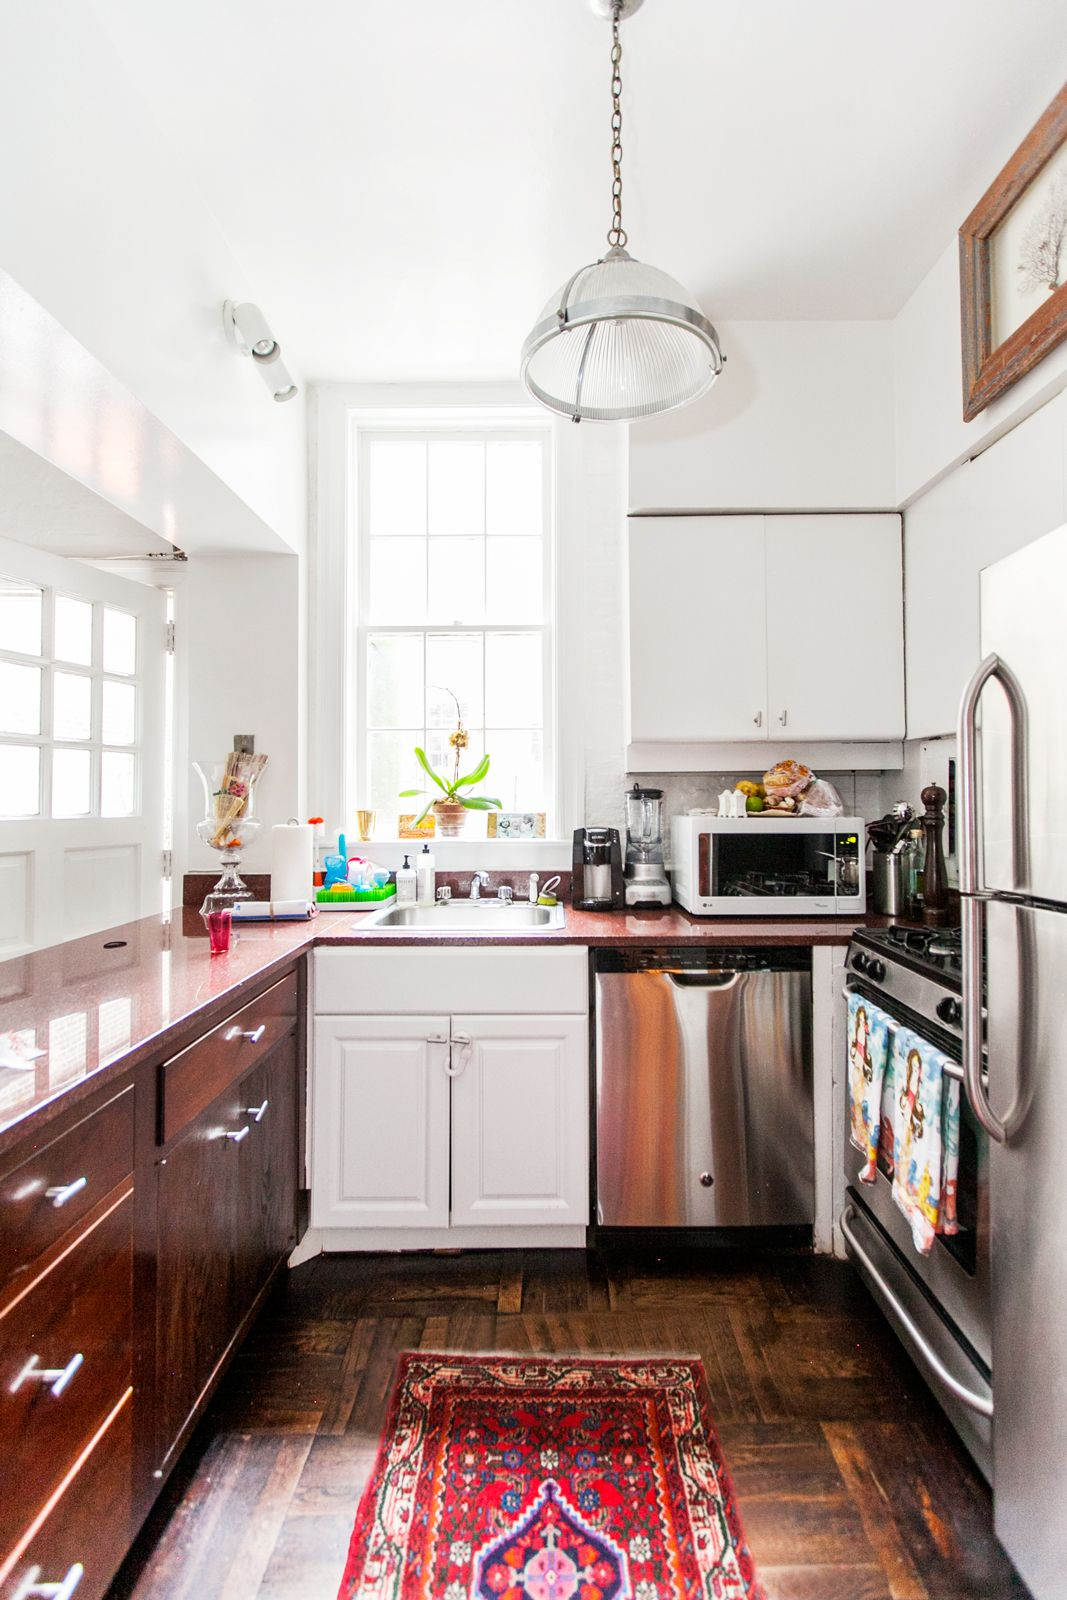 This NYC Apartment Will Inspire Your Own Home   Rebecas, Cocinas y Deco